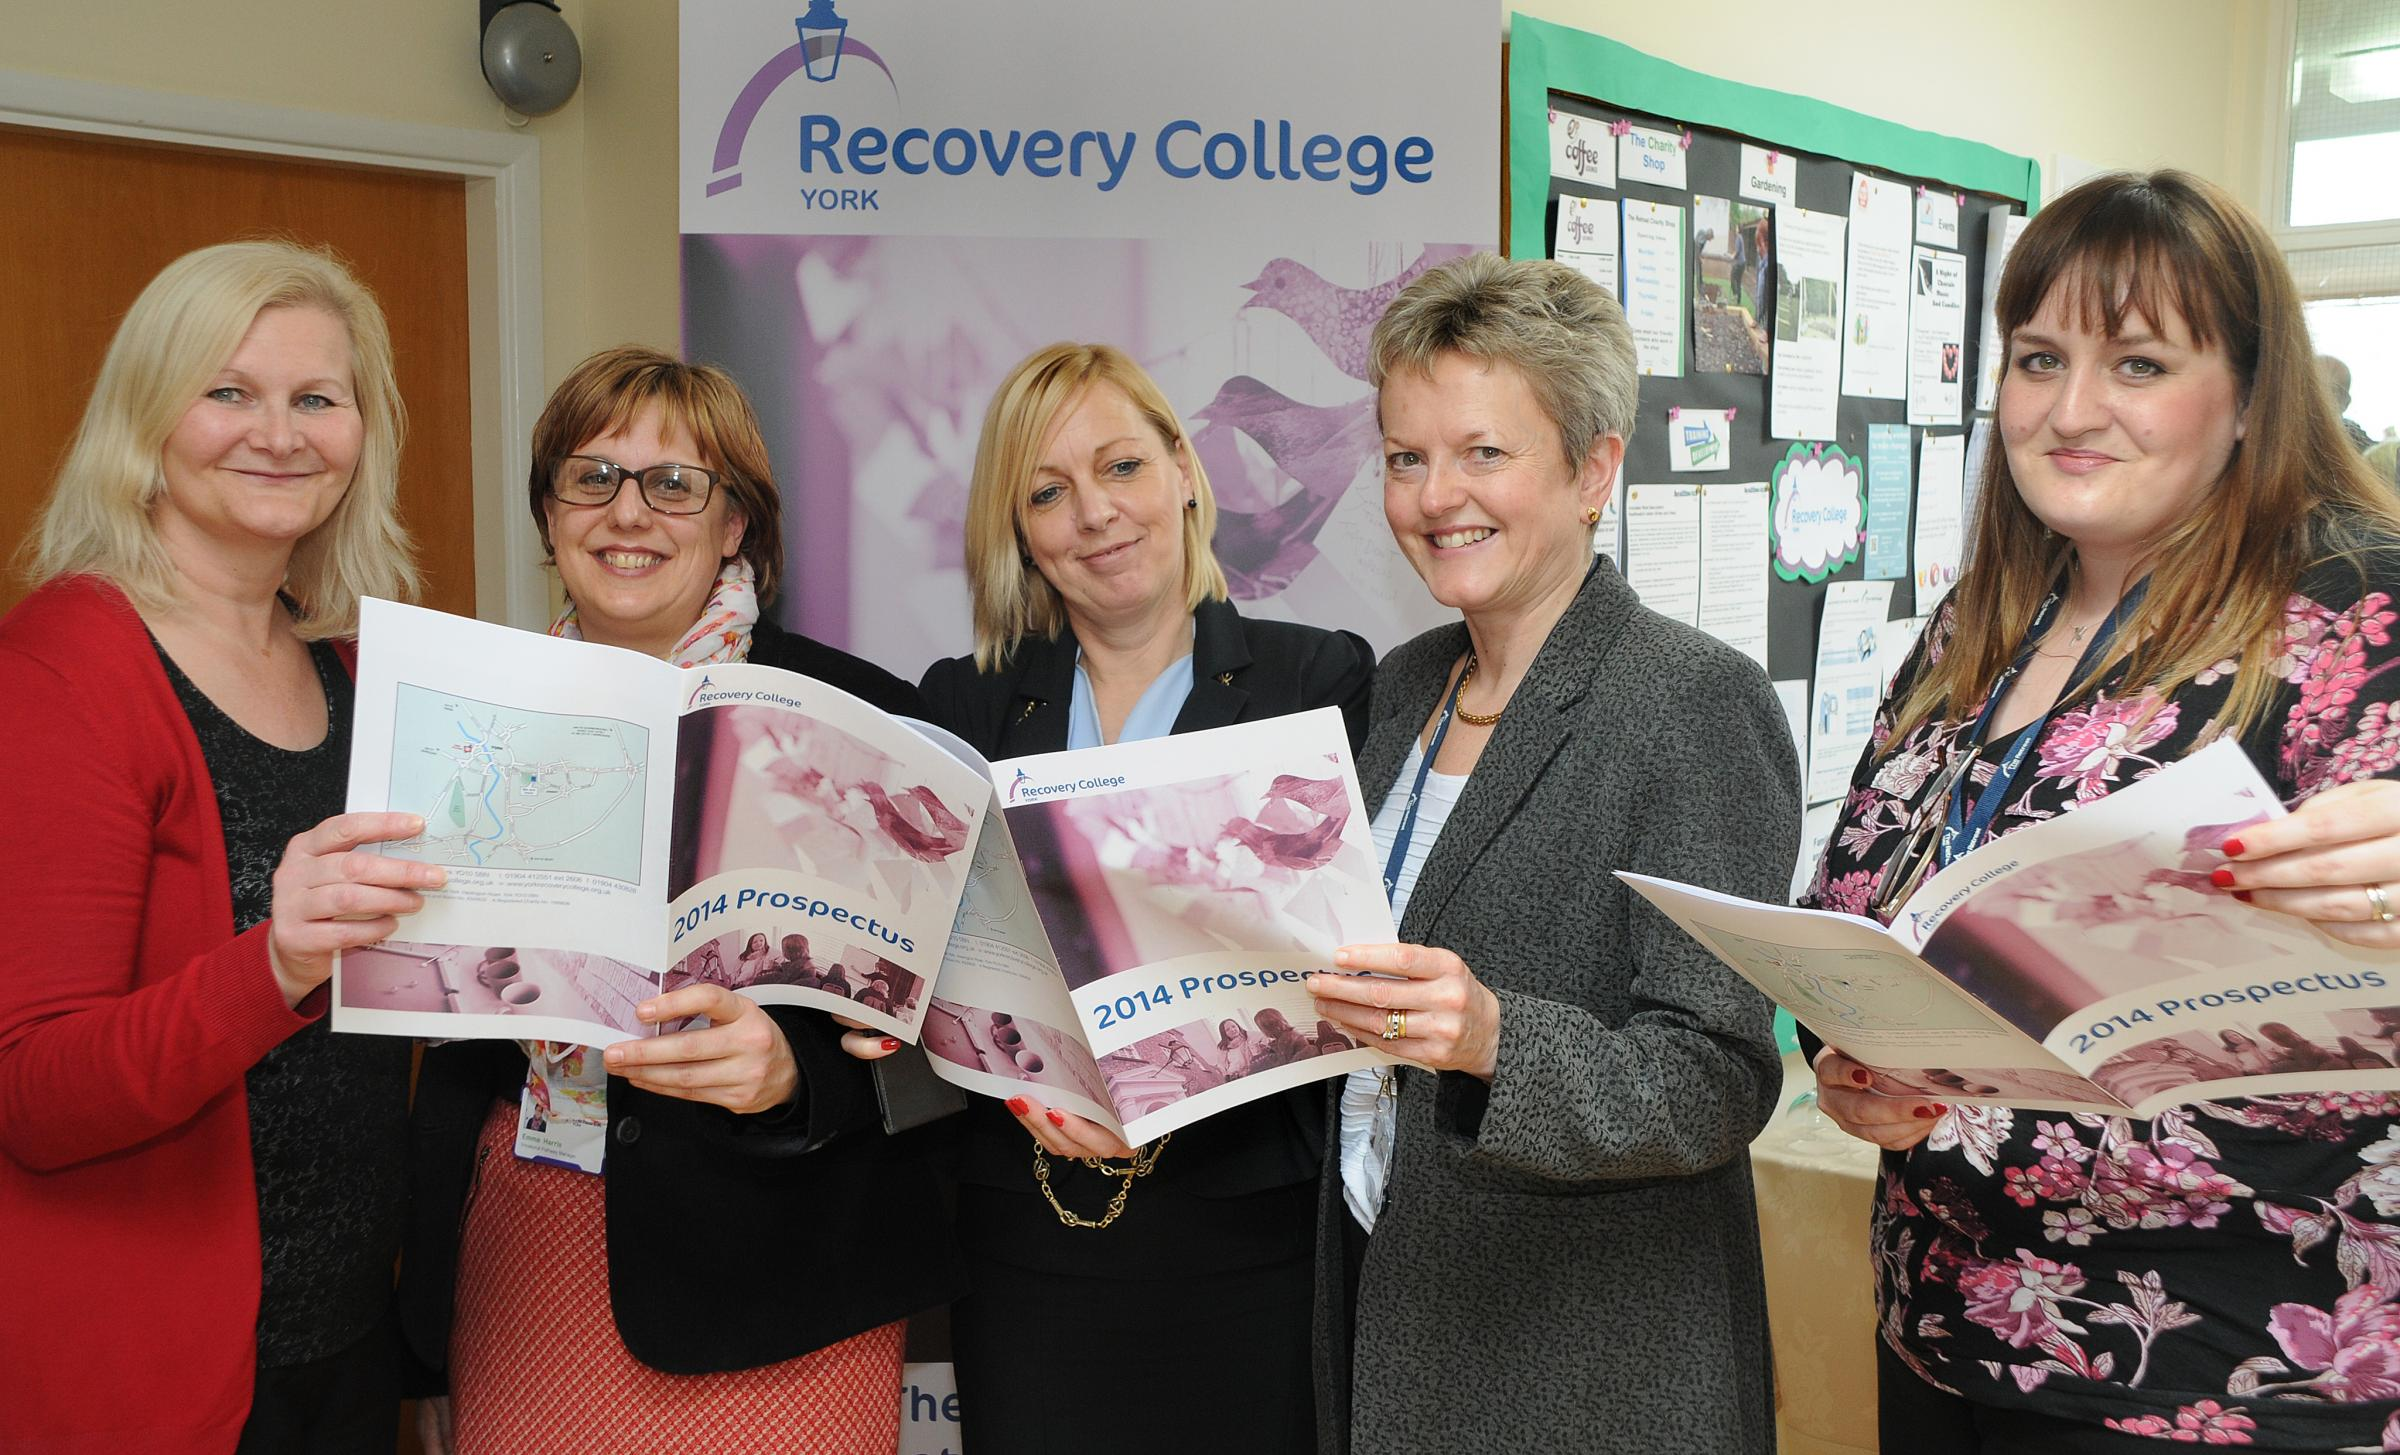 Recovery College opens at the Retreat in York